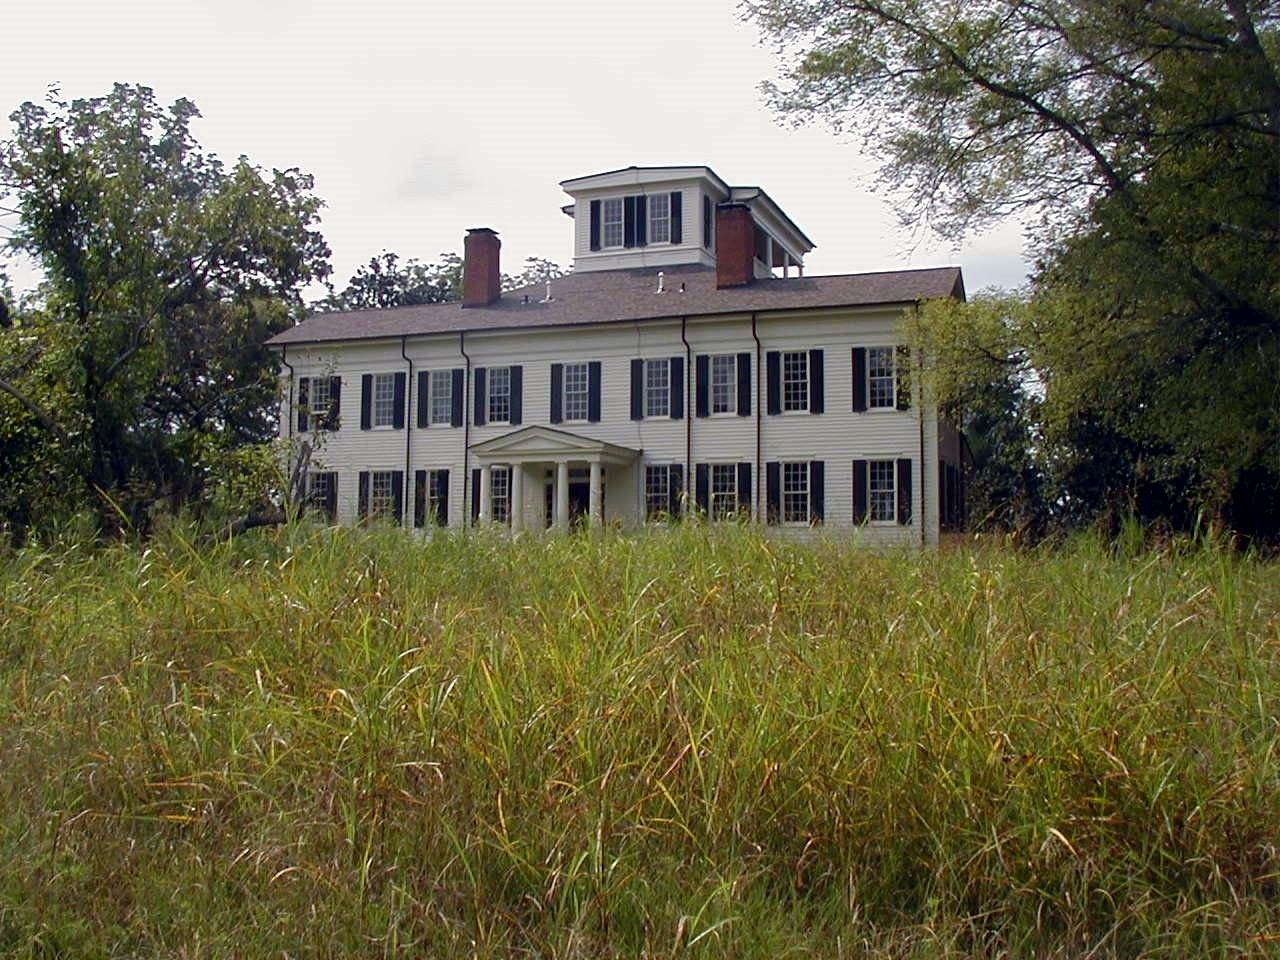 Abandoned plantations in the south the first modern view Antebellum plantations for sale